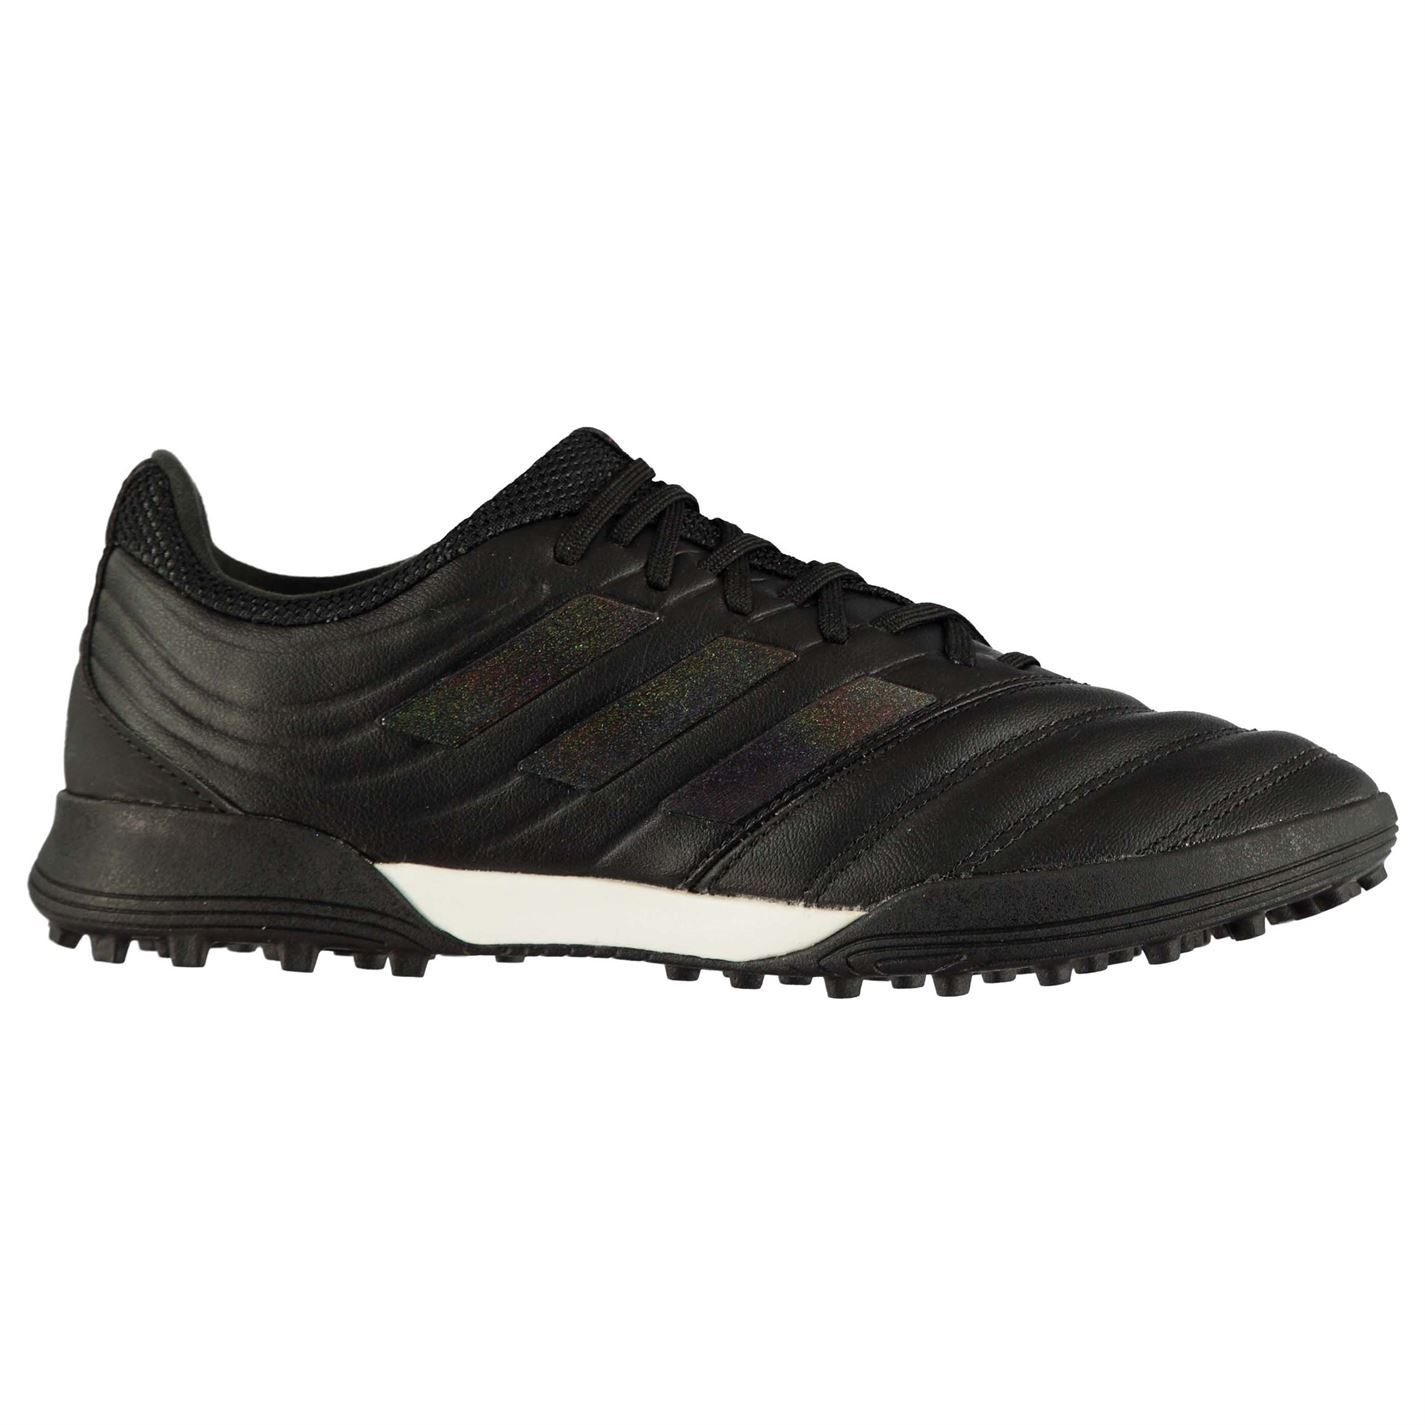 Adidas-Copa-19-3-Astro-Turf-Football-Chaussures-Homme-Football-Entrainement-Baskets miniature 11